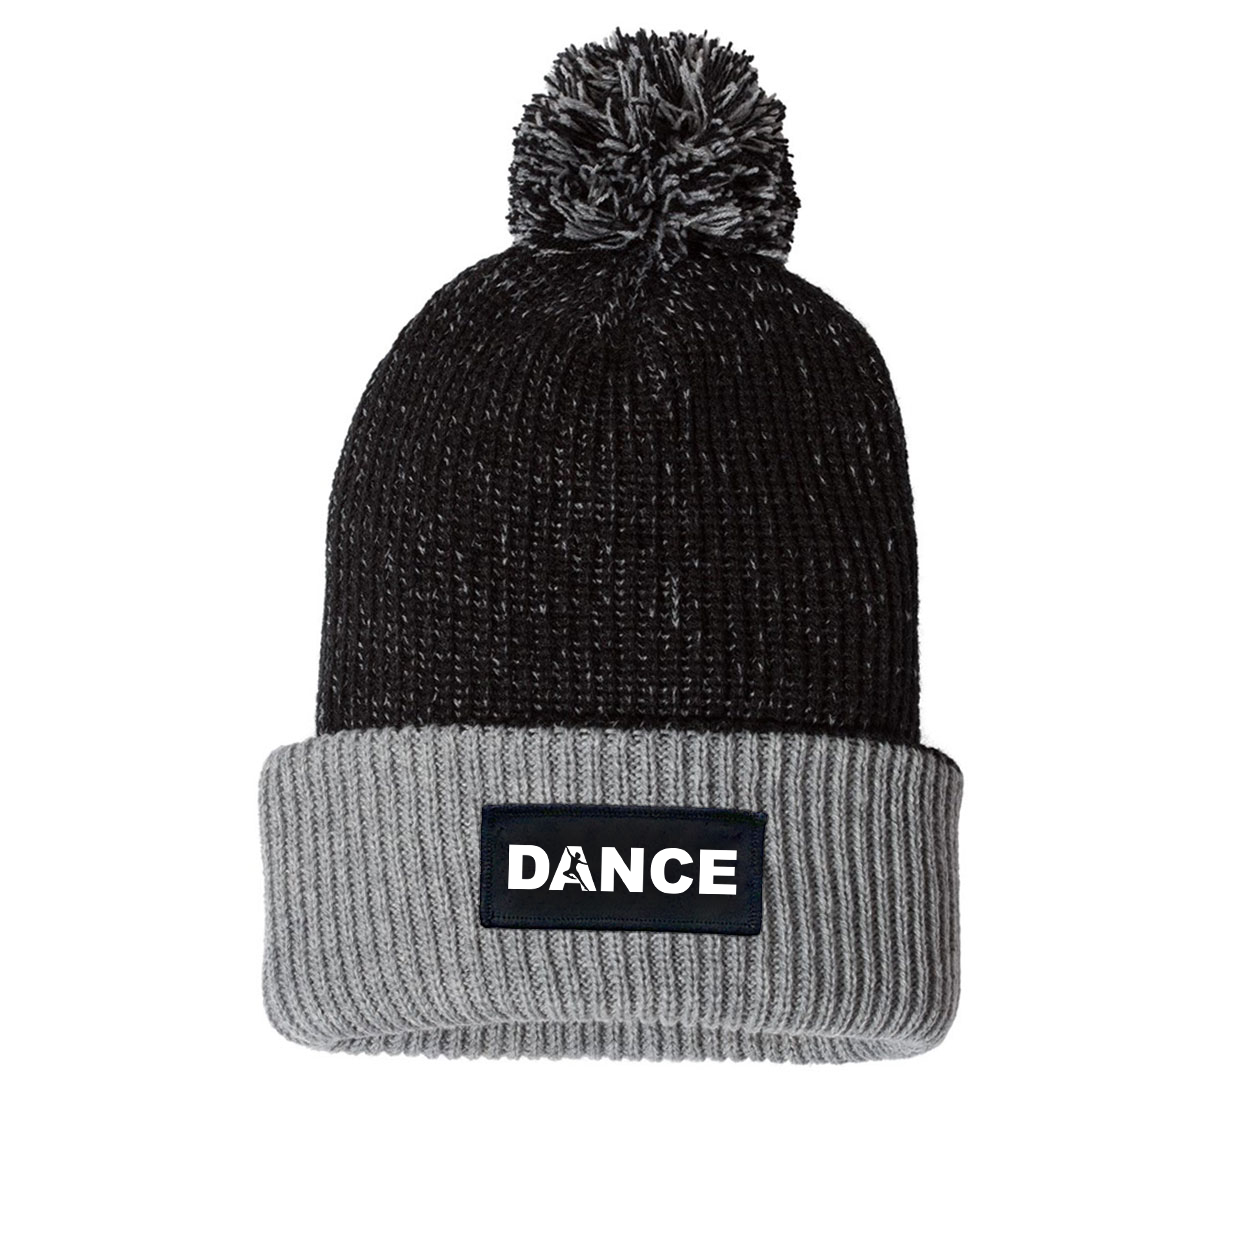 Dance Silhouette Logo Night Out Woven Patch Roll Up Pom Knit Beanie Black/Gray (White Logo)